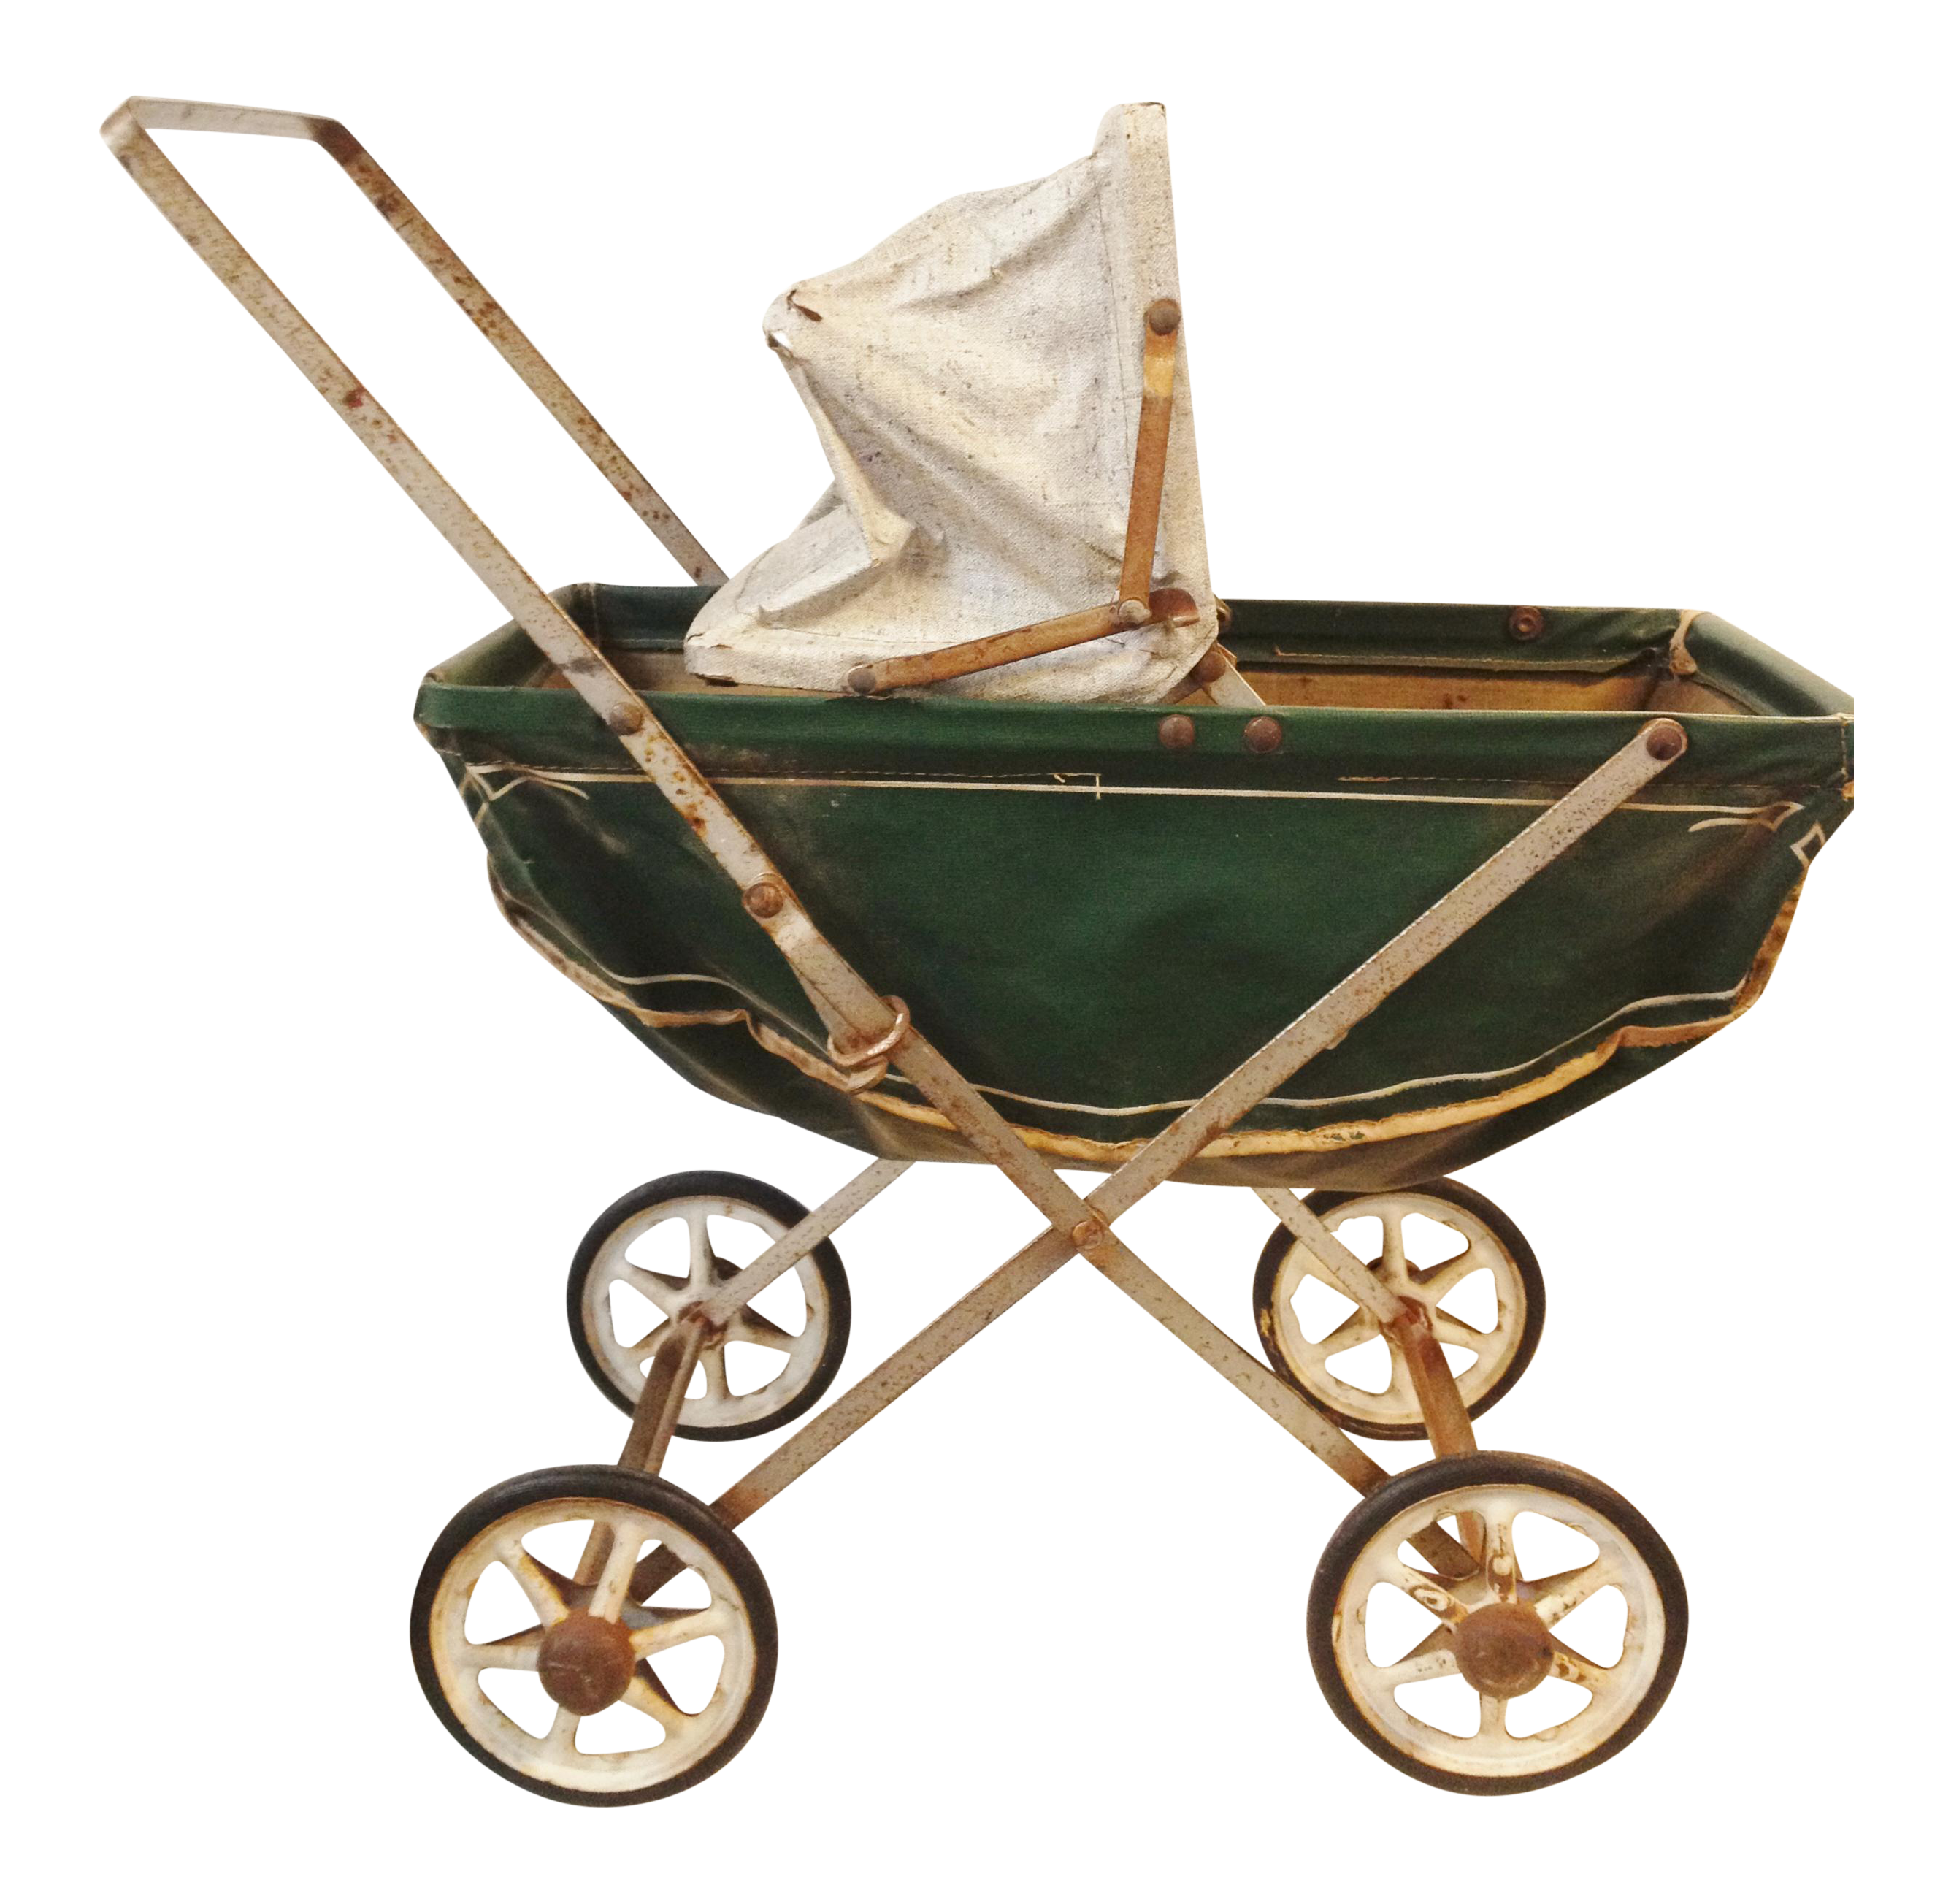 Crib drawing diy baby doll. Vintage toy stroller pram